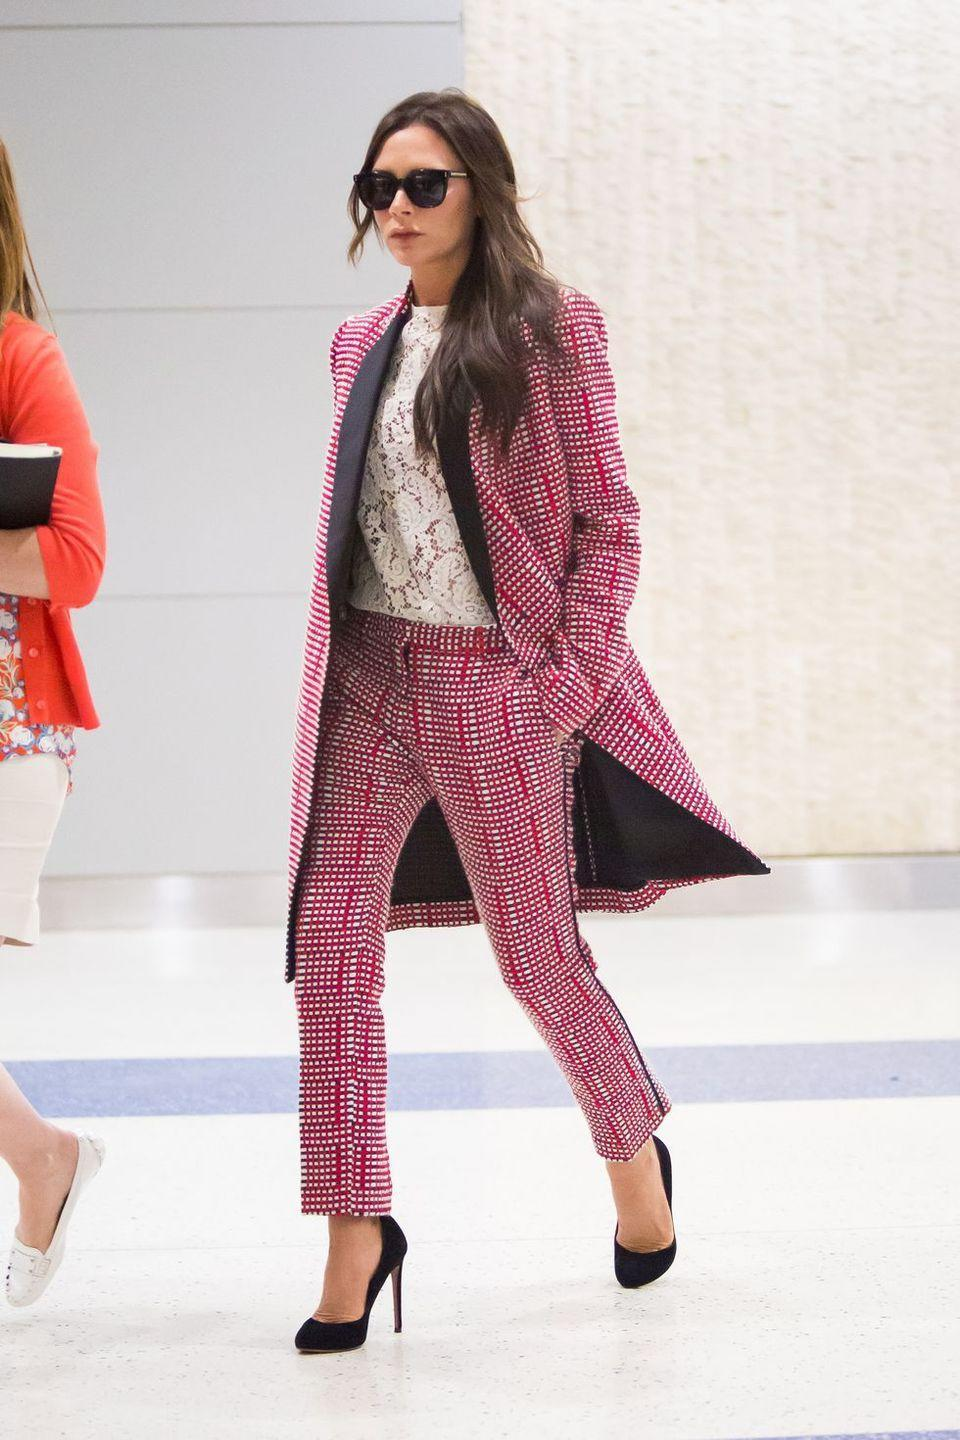 <p><strong>Victoria Beckham, 2015: </strong>Don't get me wrong, Victoria looks <em>great </em>here. But a matching two piece suit and heels to the airport feels like she's doing ~the most~.</p>